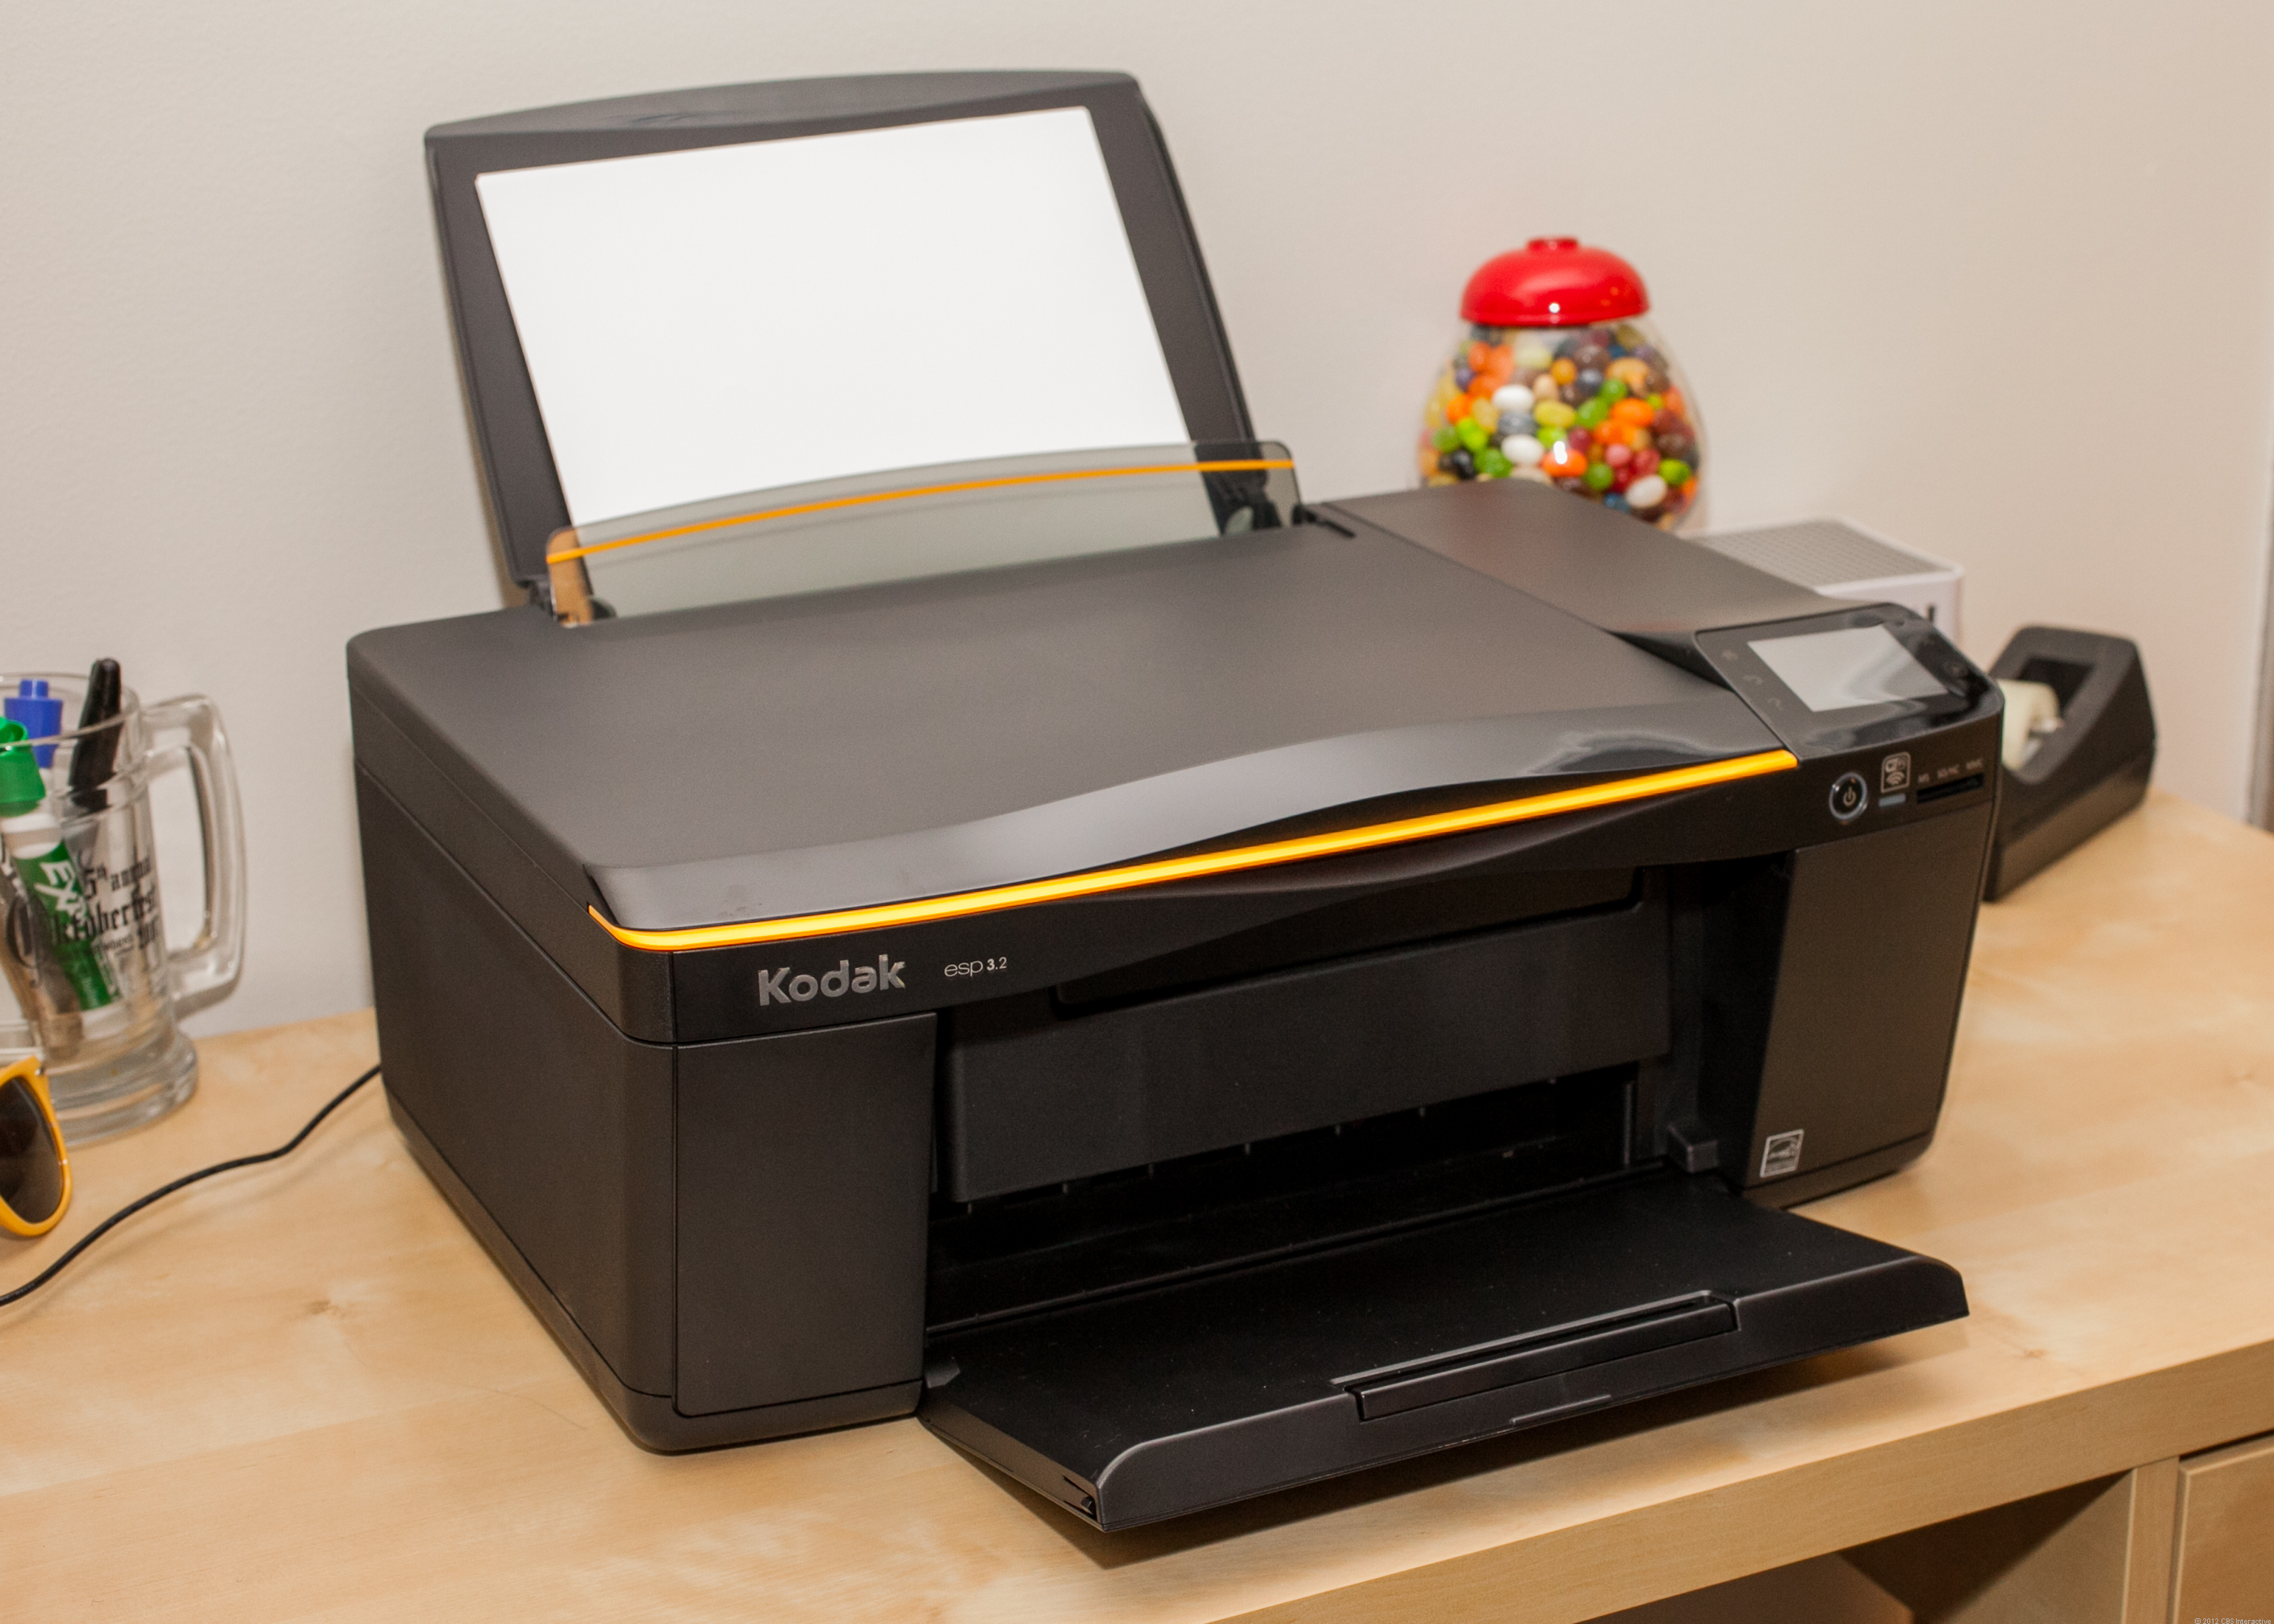 Kodak ESP 3.2 All-in-One Printer